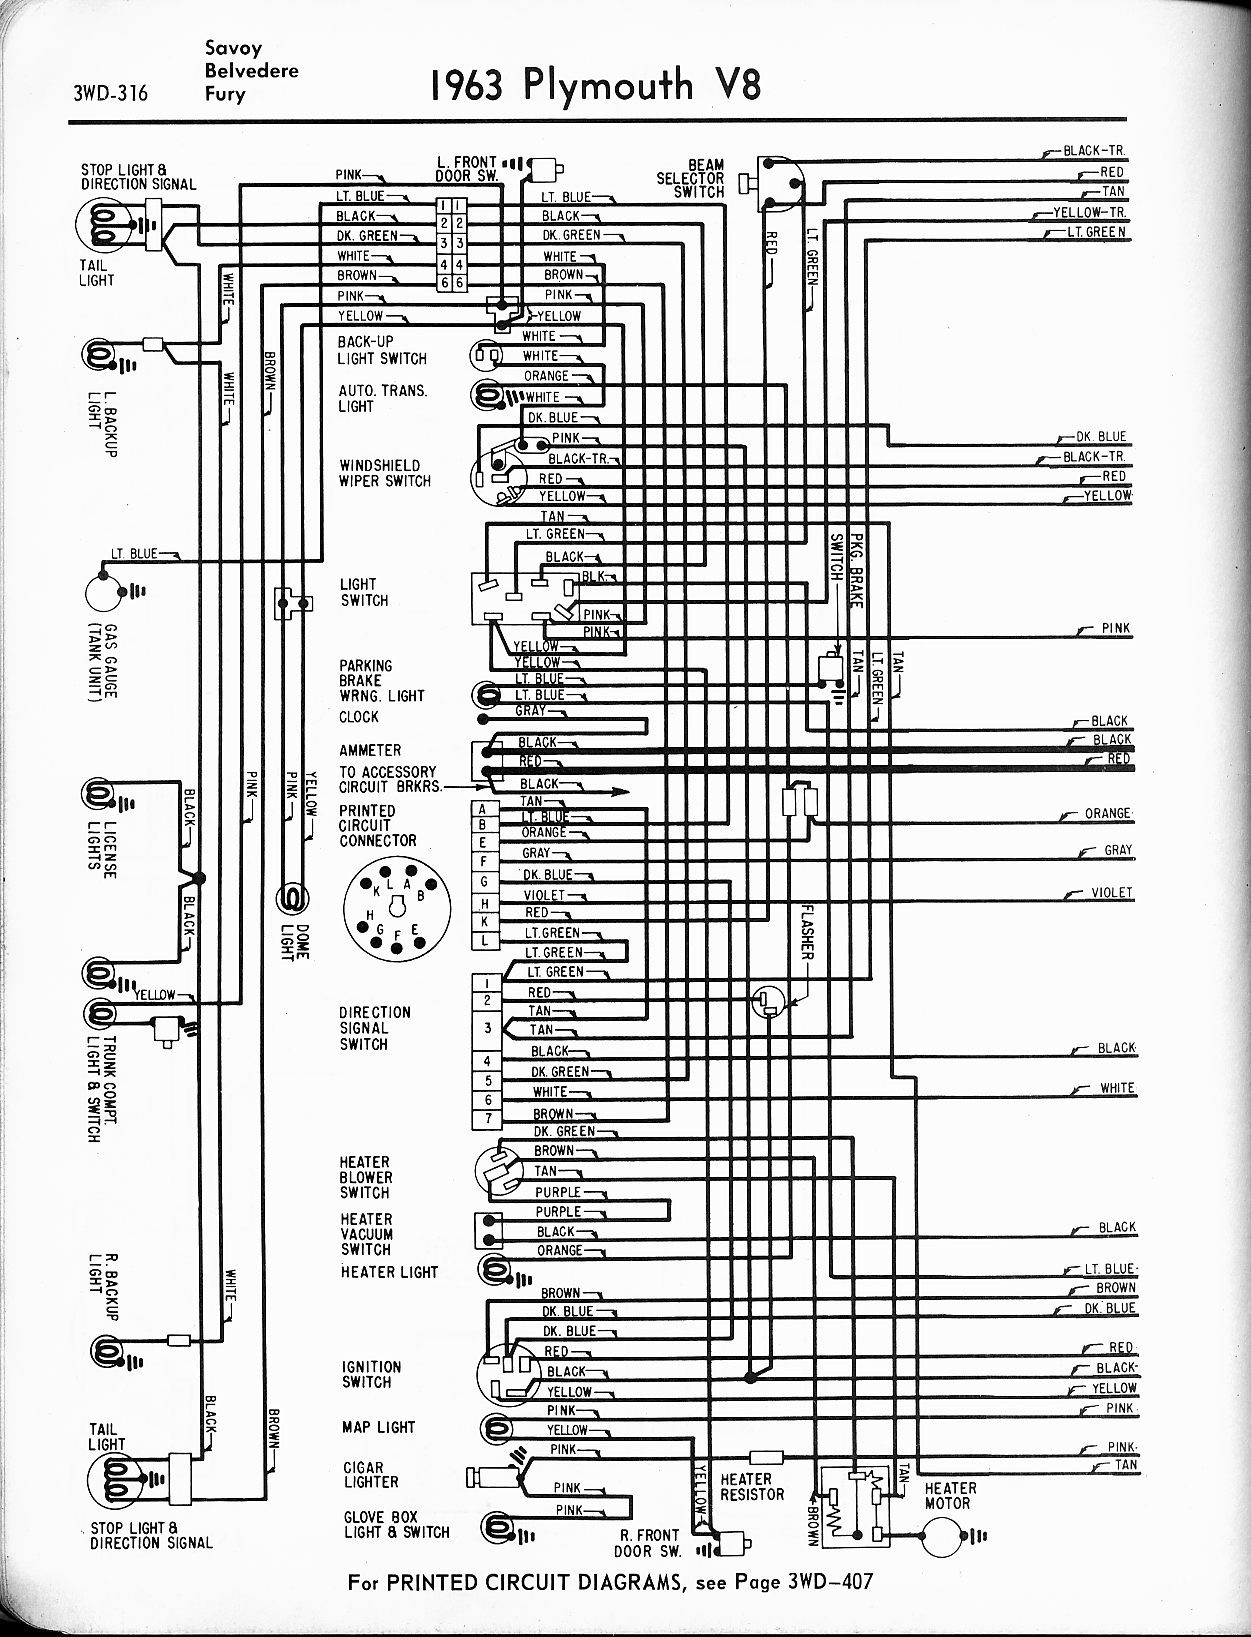 hight resolution of 1965 plymouth fury wiring diagram wiring diagrams lol 1975 plymouth fury 1967 plymouth fury wiring diagram